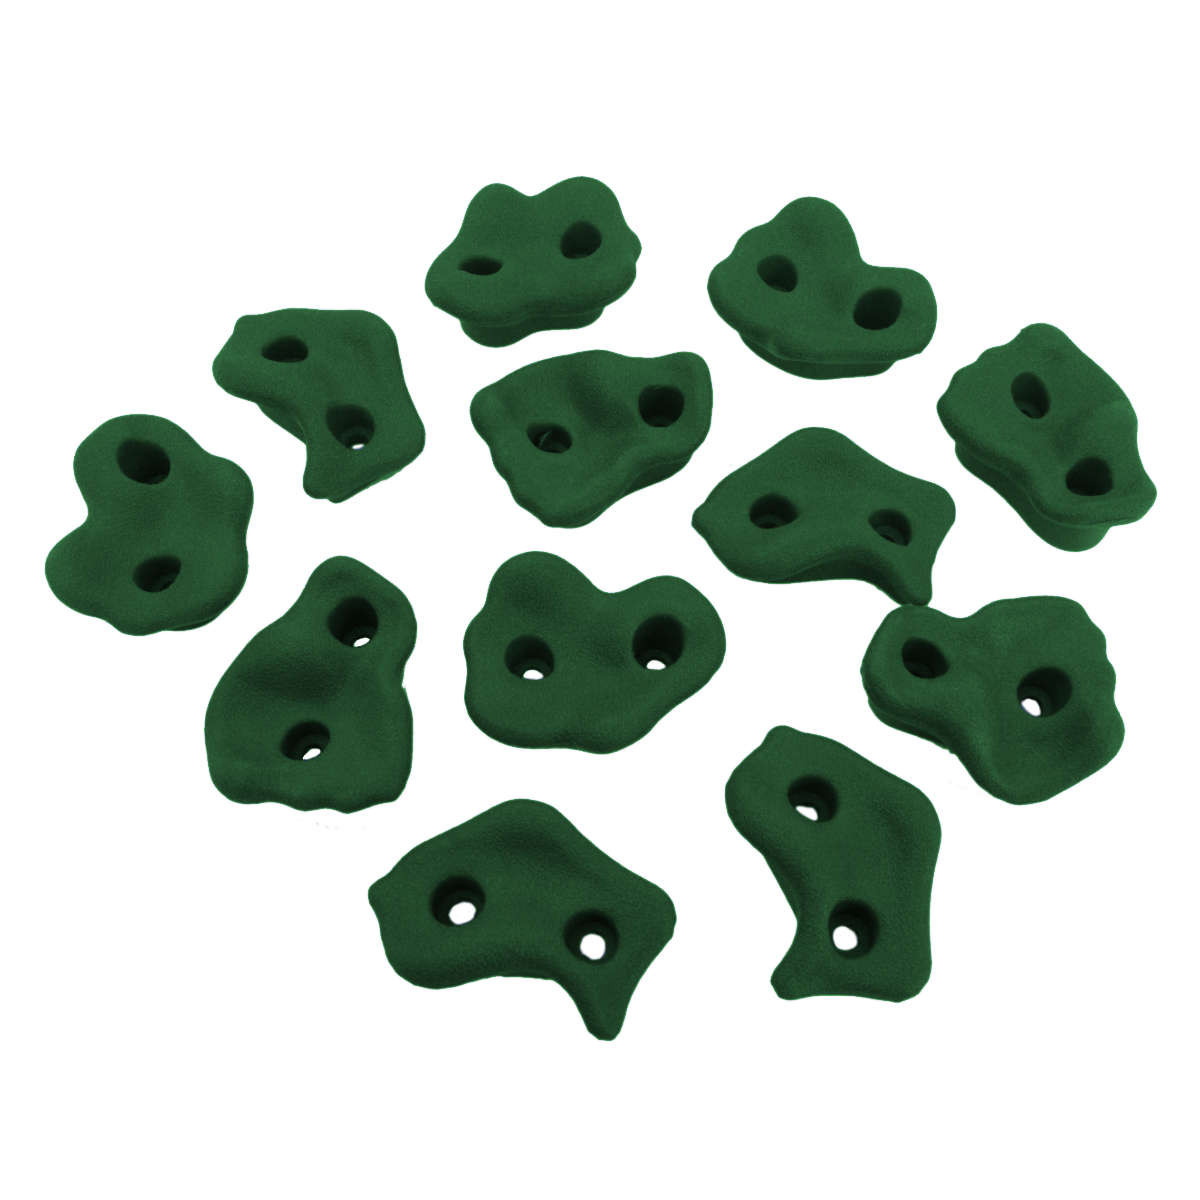 Small Climbing Rock Holds - Green